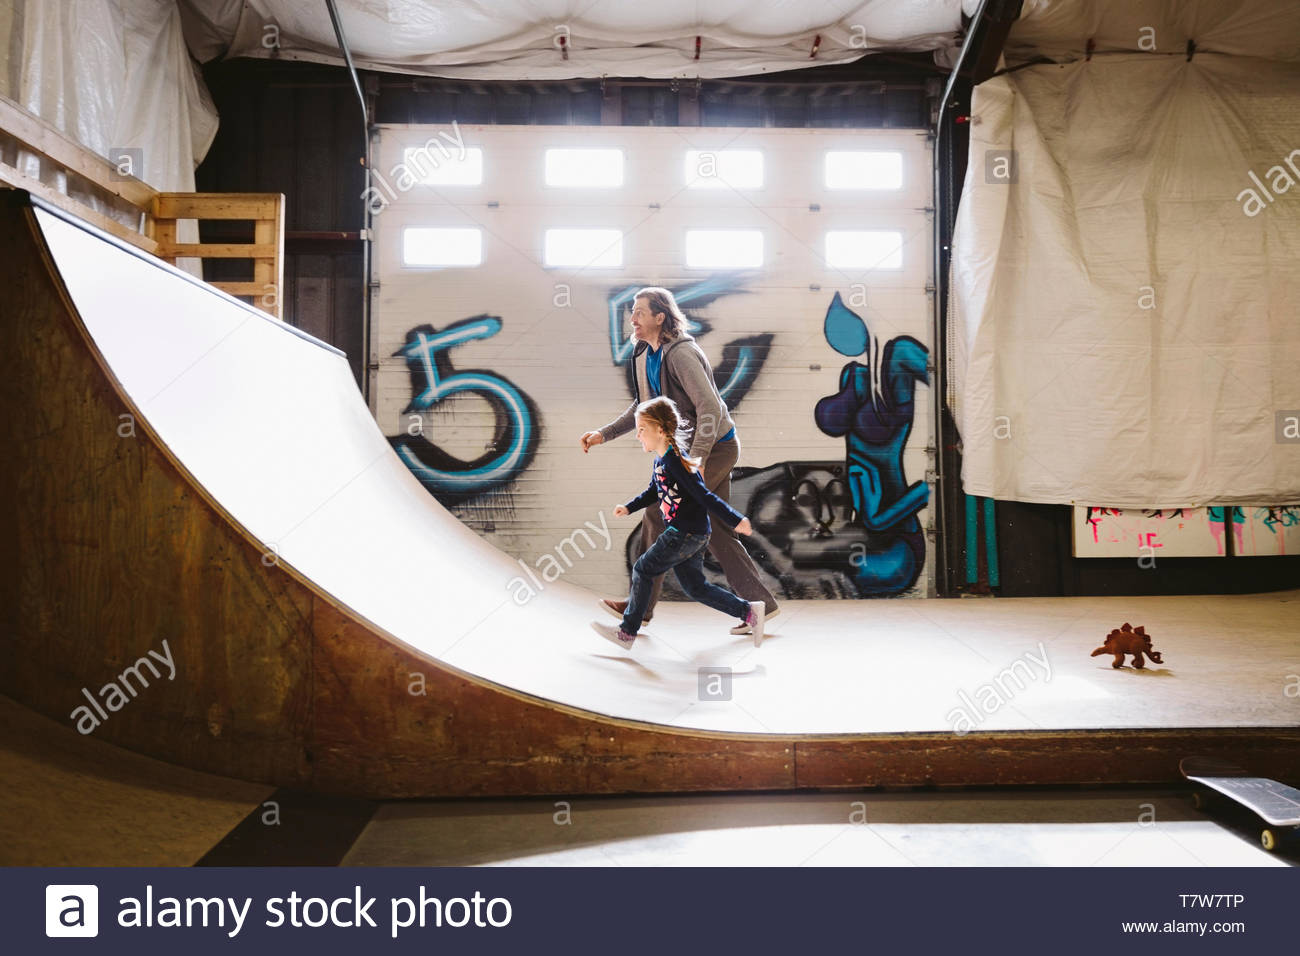 Father and daughter running up indoor skate park ramp Stock Photo